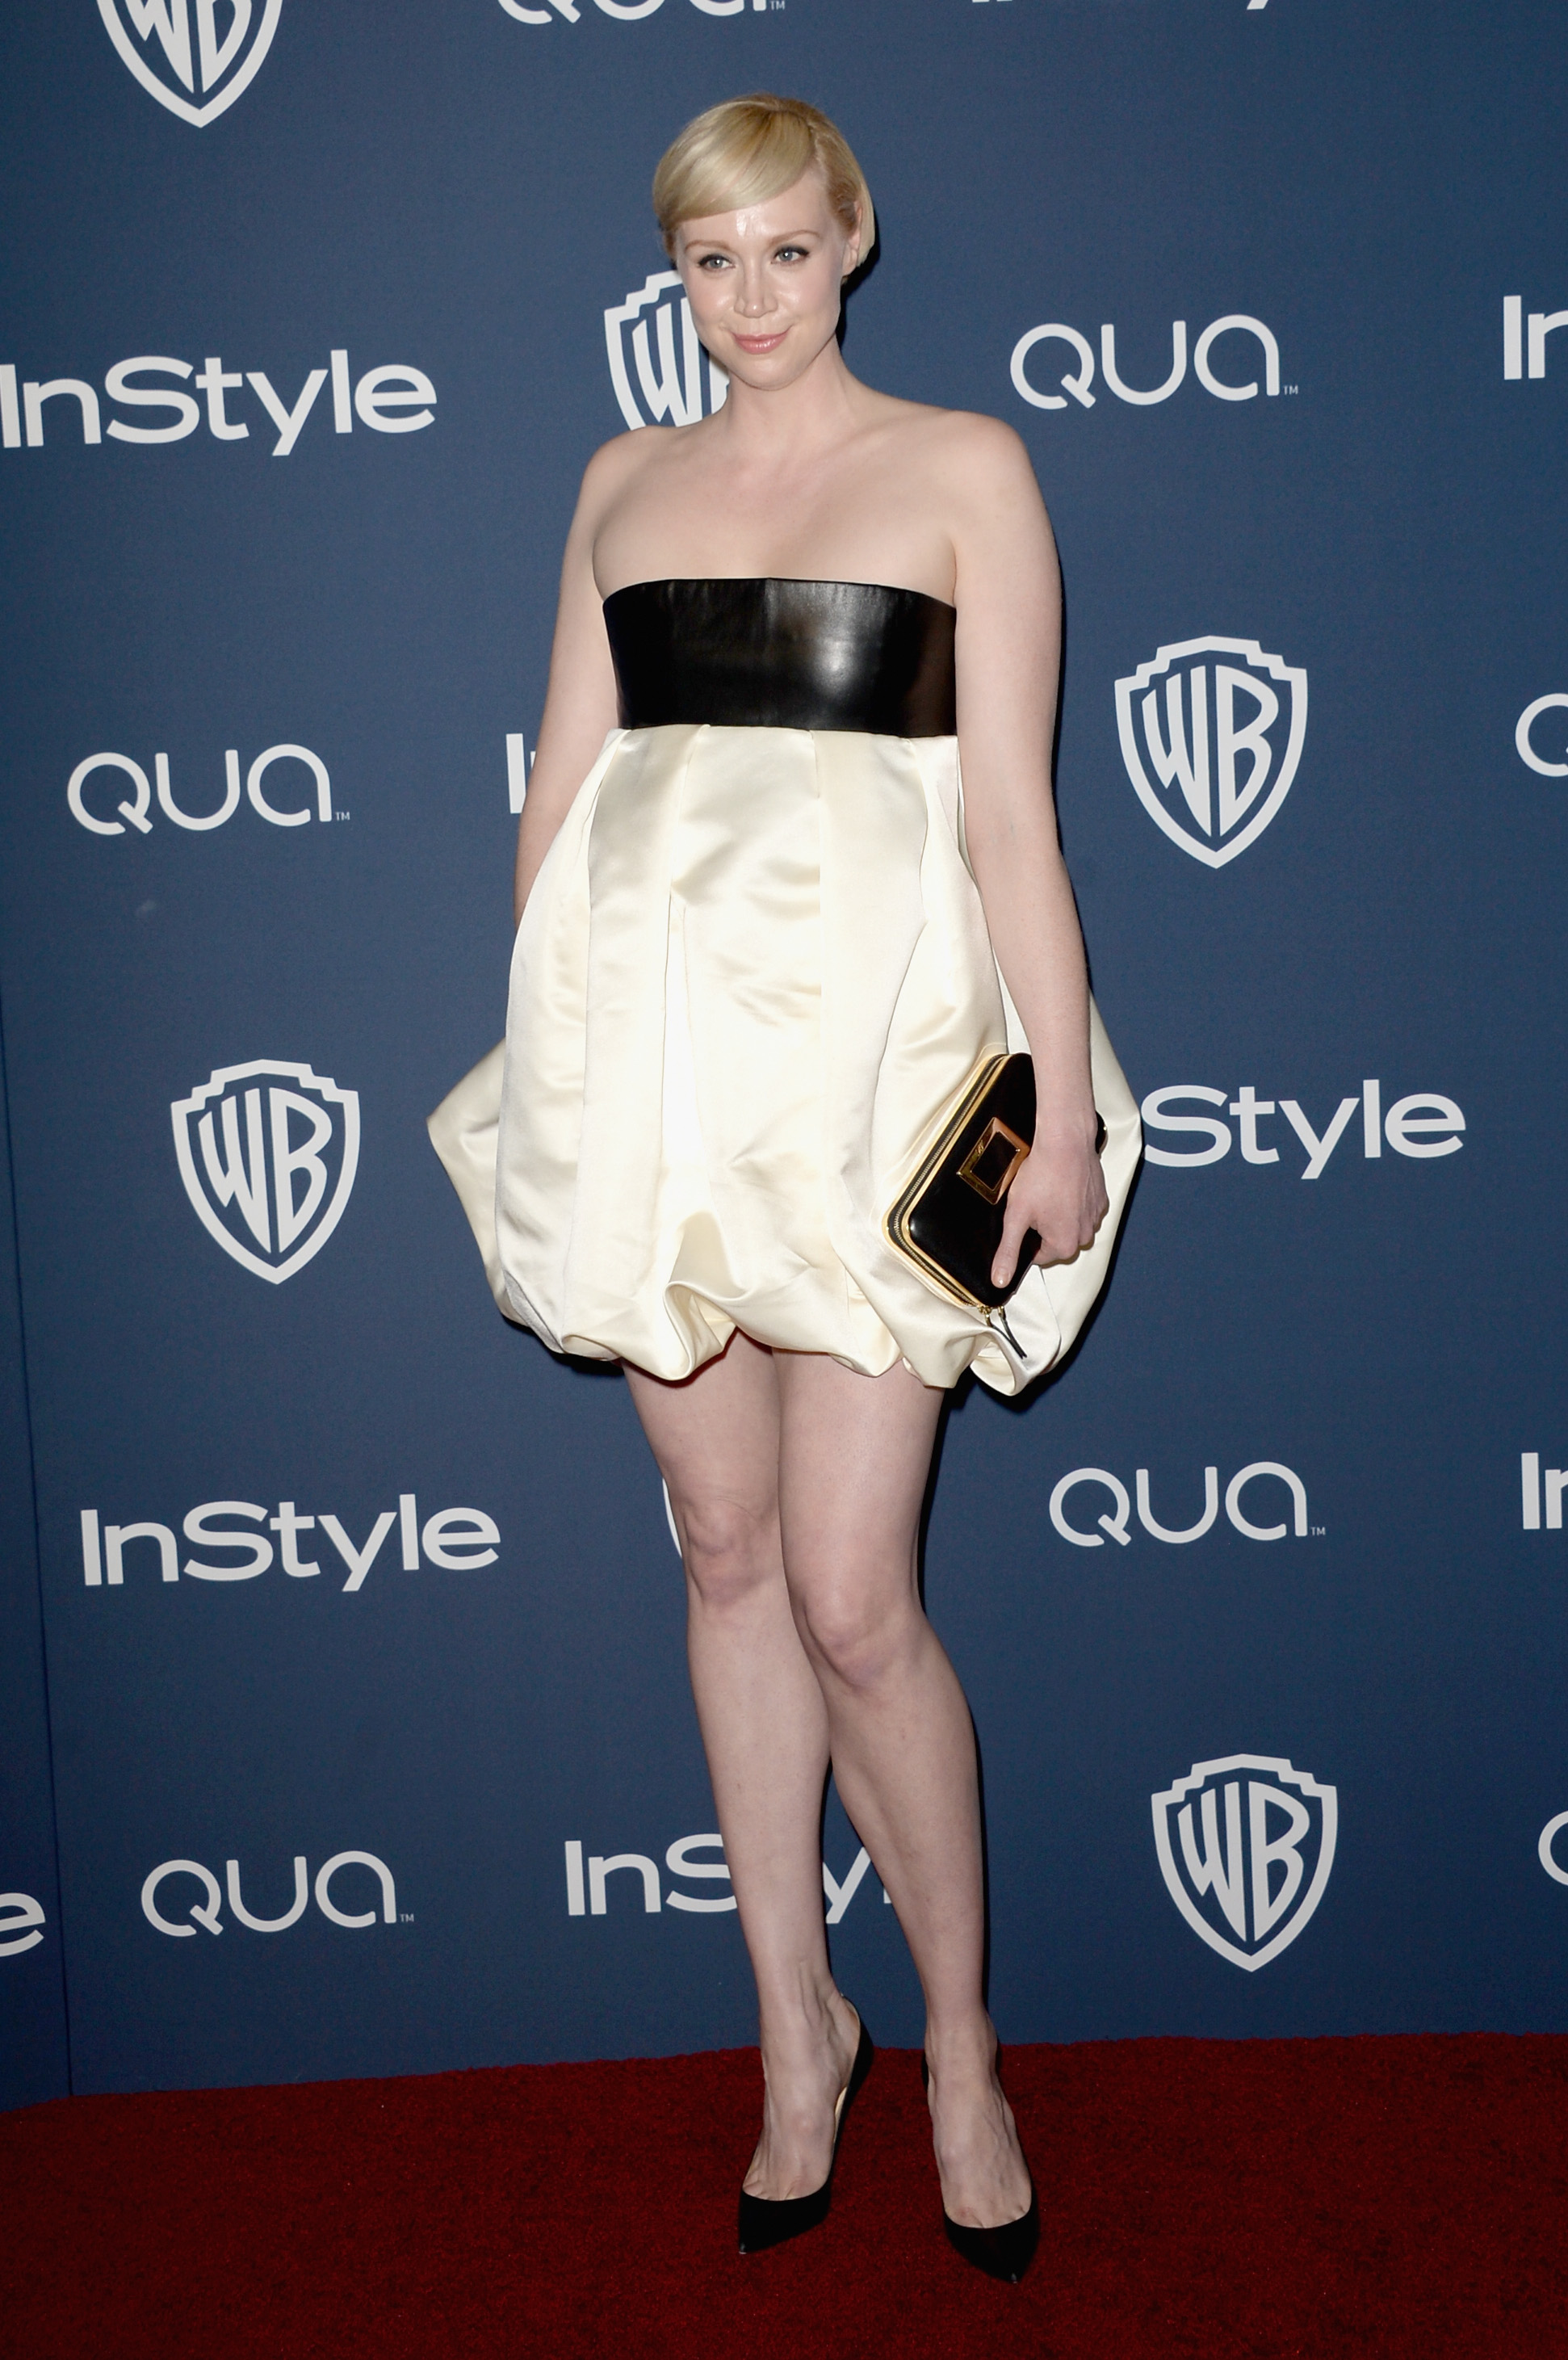 BEVERLY HILLS, CA - JANUARY 12: Actress Gwendoline Christie attend the 2014 InStyle and Warner Bros. 71st Annual Golden Globe Awards Post-Party on January 12, 2014 in Beverly Hills, California. (Photo by Jason Merritt/Getty Images)